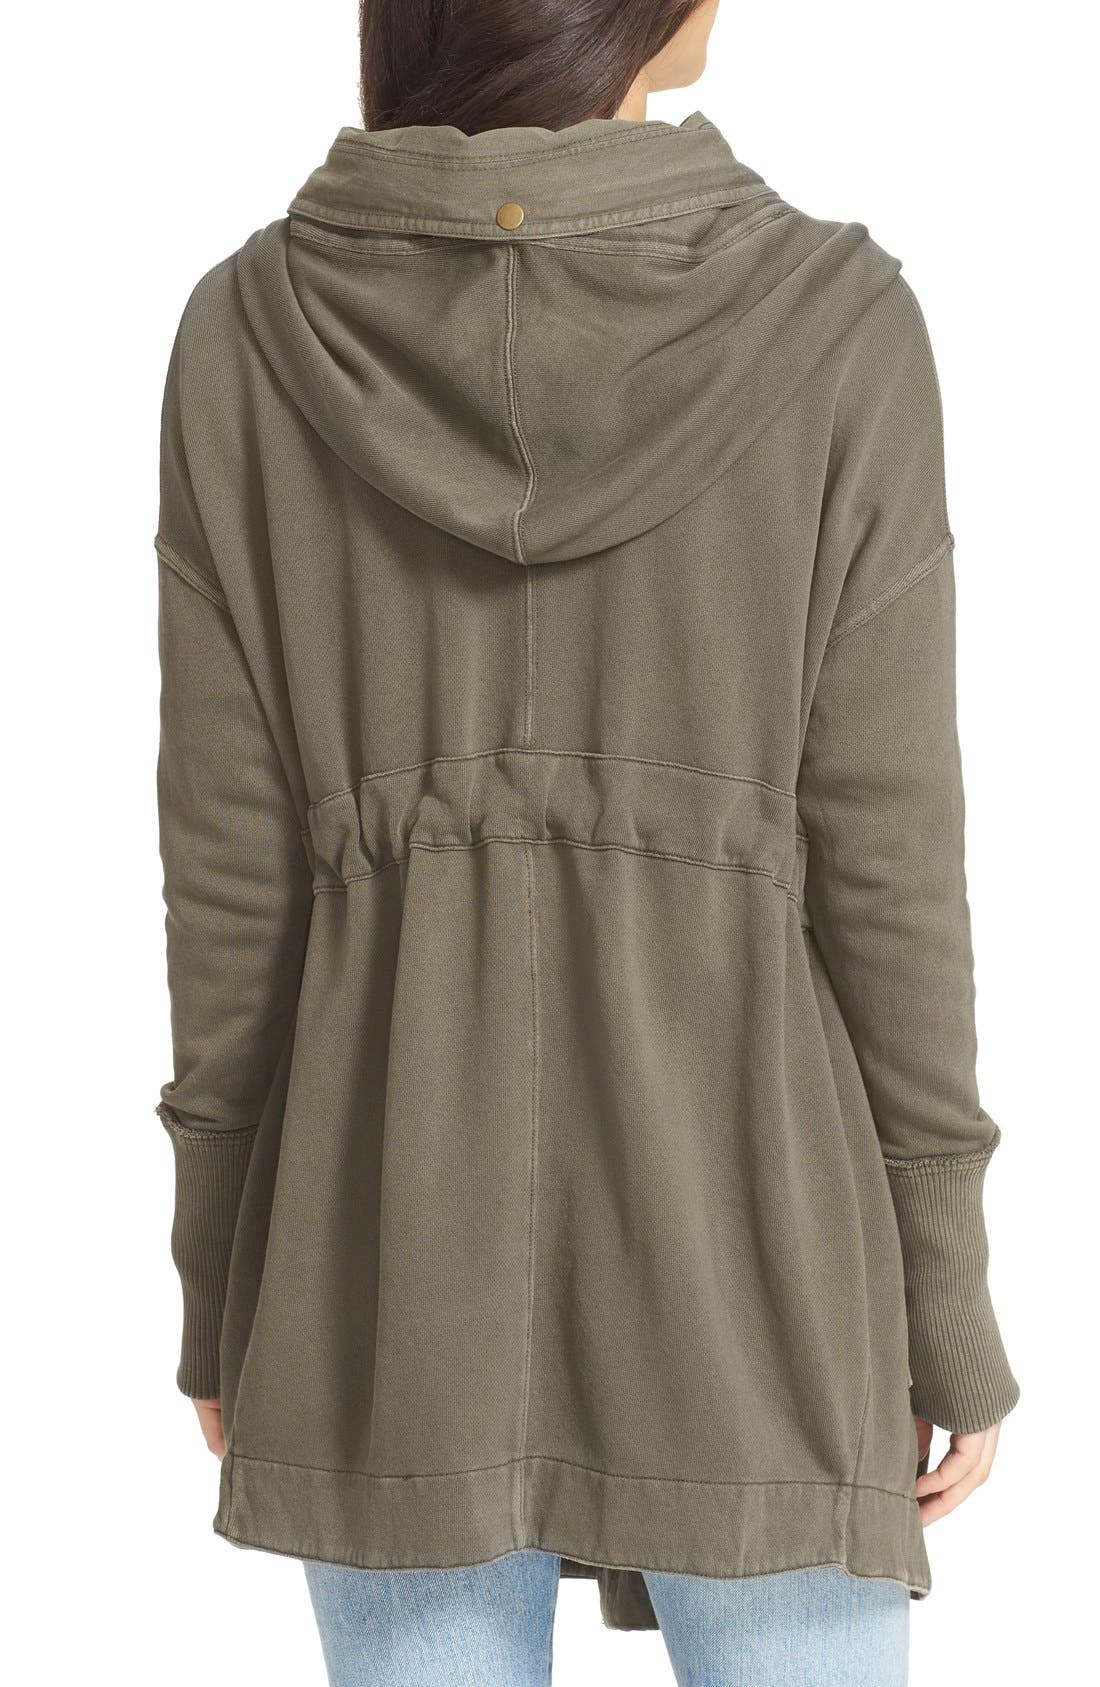 FREE PEOPLE, Brentwood Cotton Cardigan, Alternate thumbnail 4, color, 350